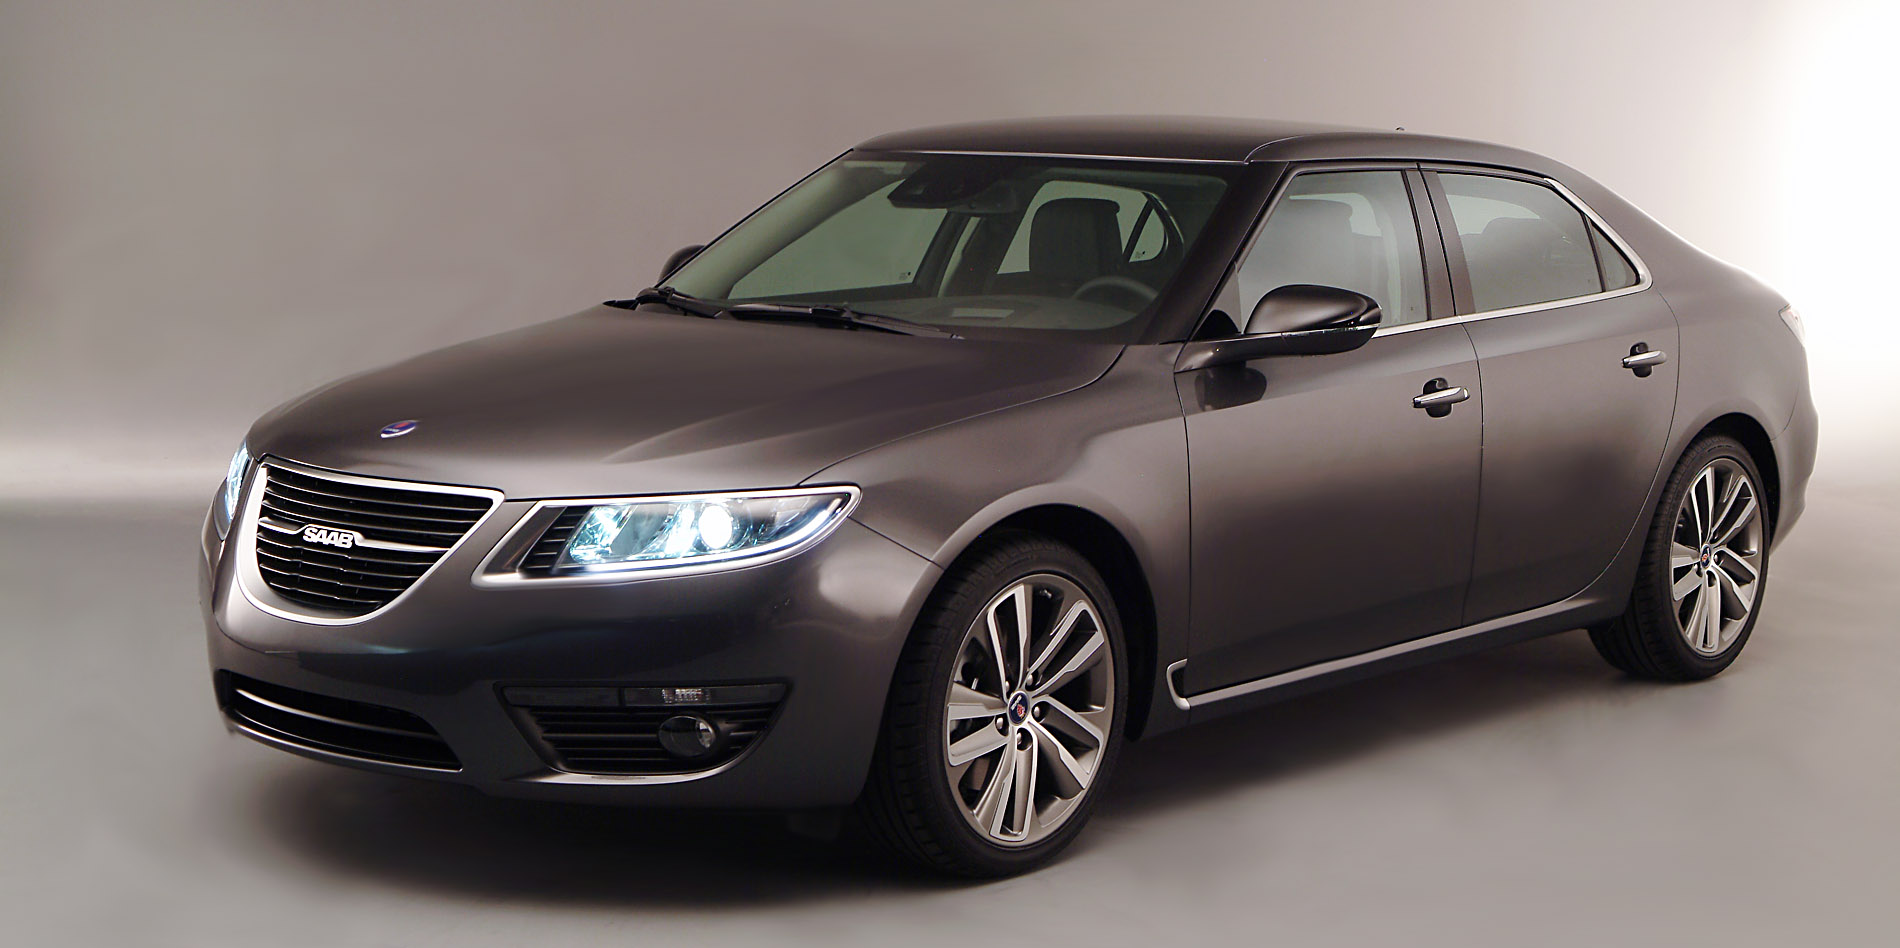 saab 95 pictures #4